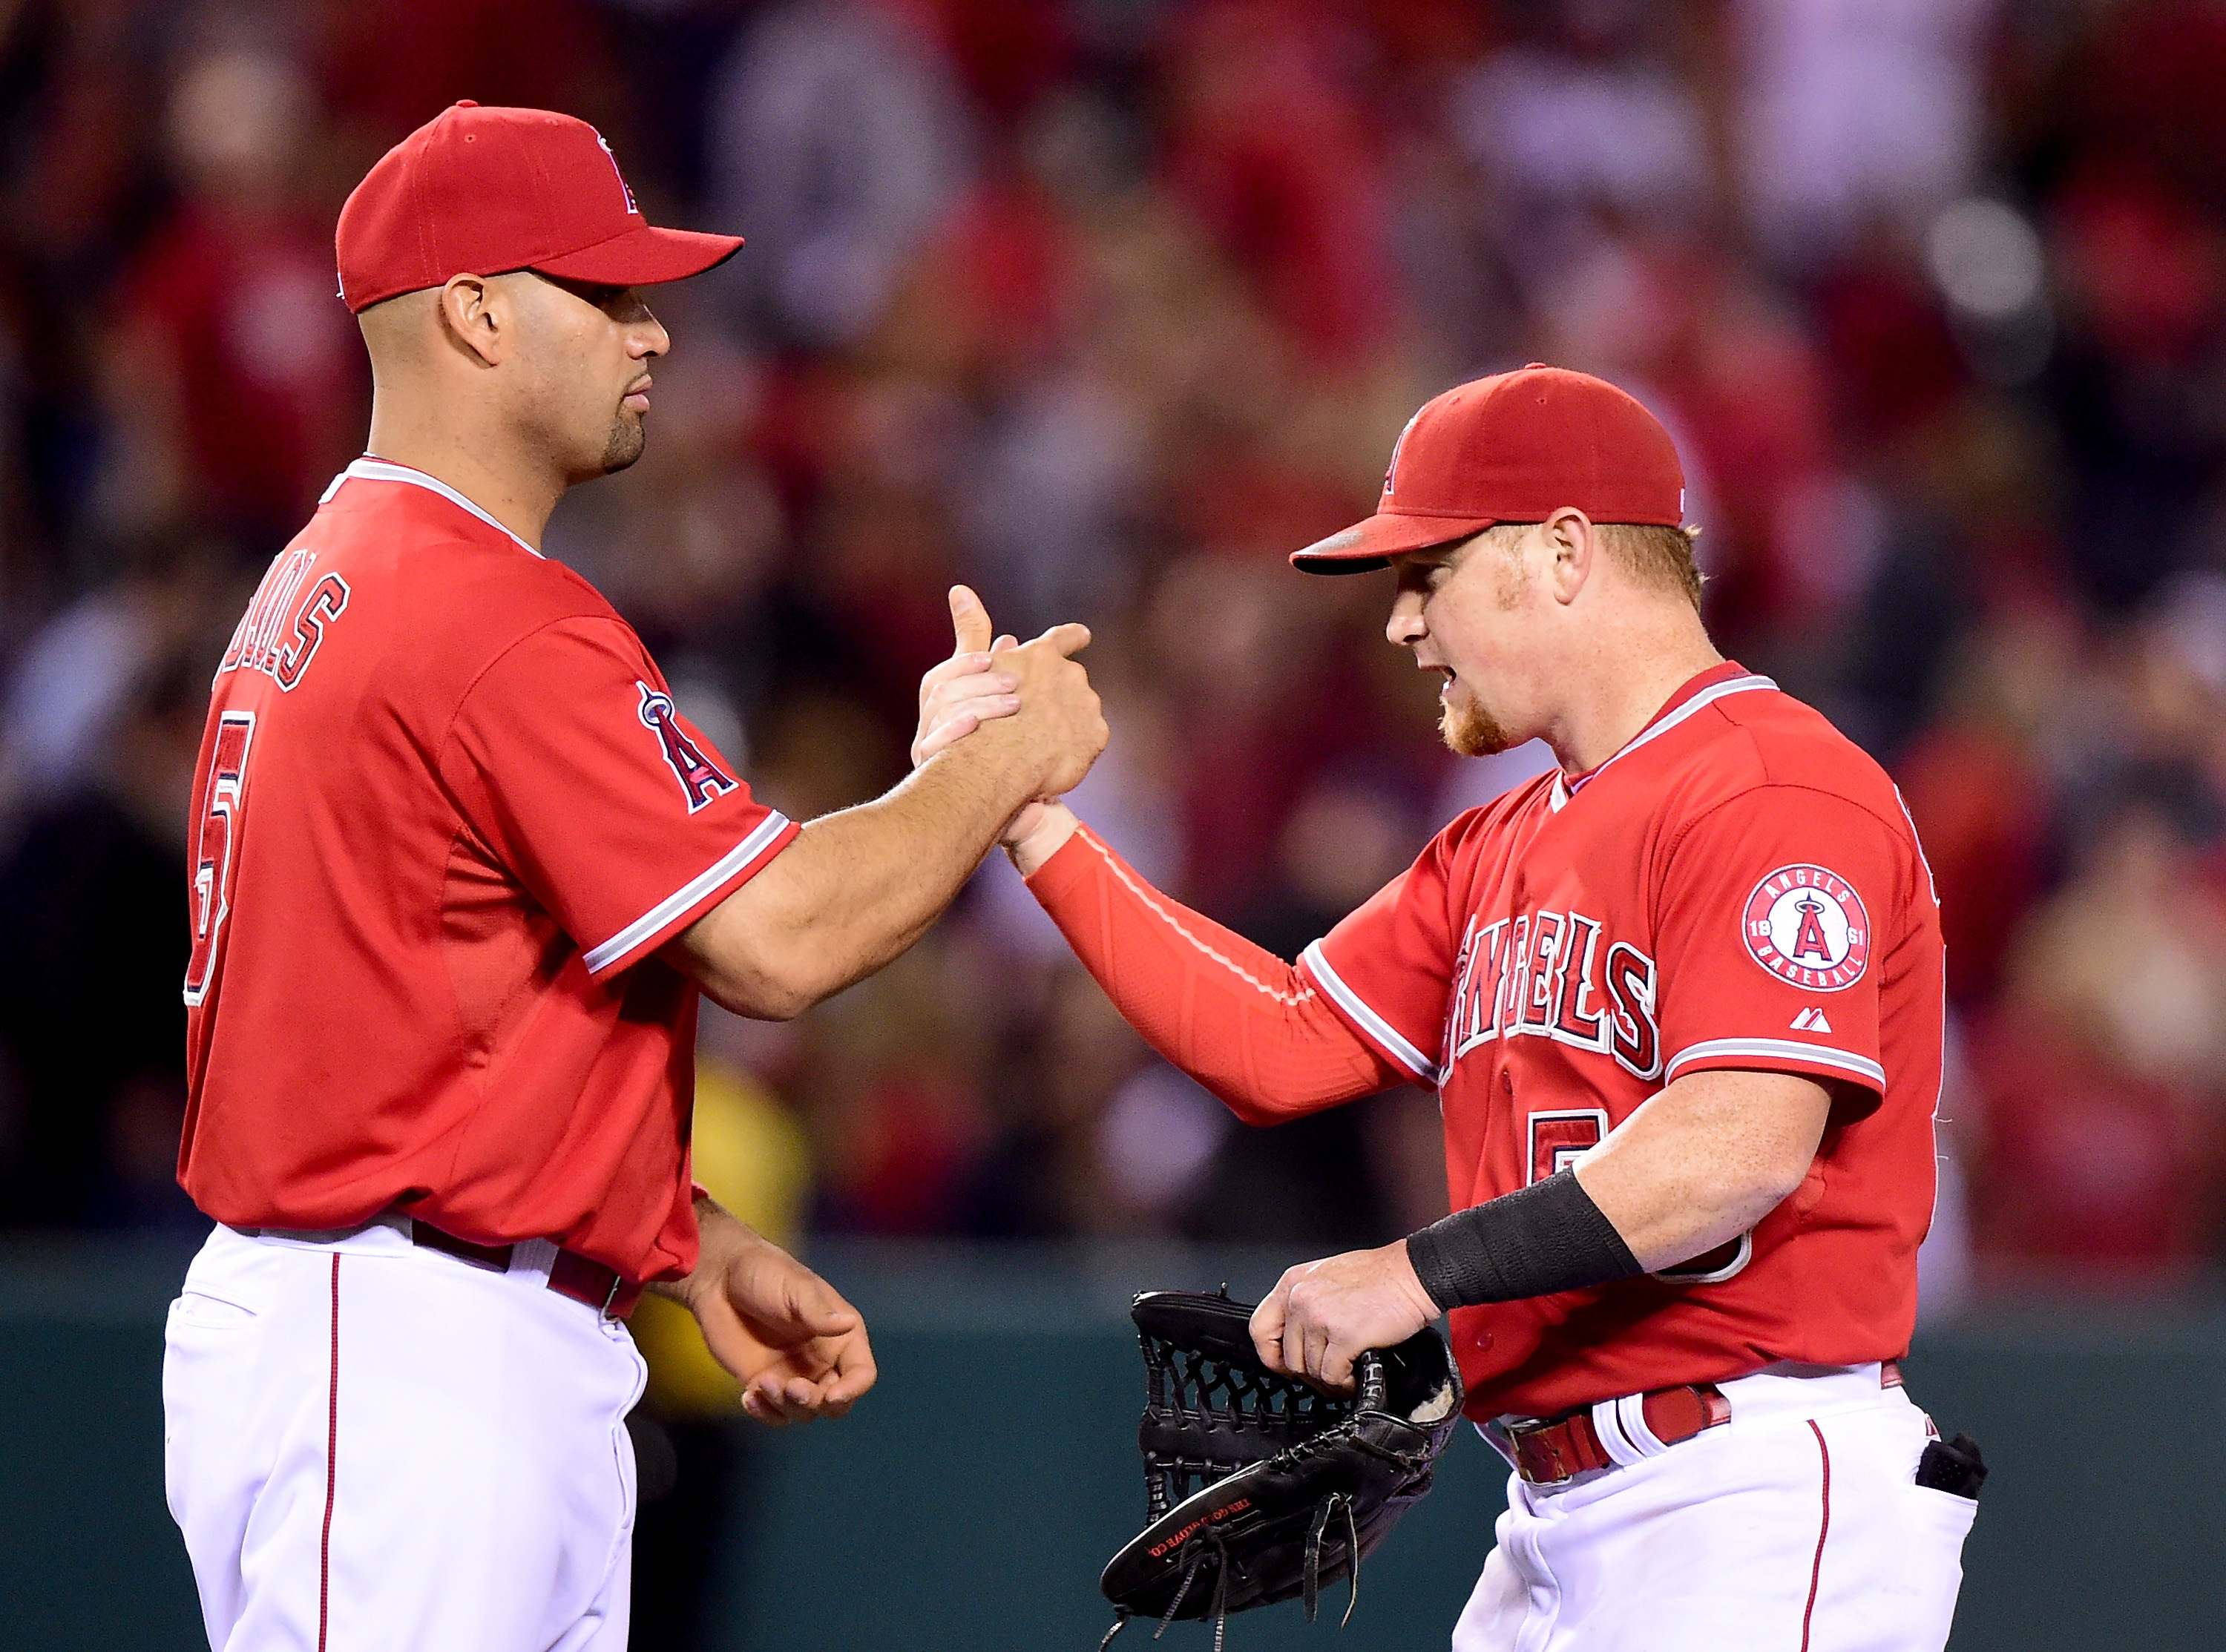 ANAHEIM, CA - JUNE 13:  Albert Pujols #5 of the Los Angeles Angels celebrates a 1-0 win over the Oakland Athletics with Kole Calhoun #56 at Angel Stadium of Anaheim on June 13, 2015 in Anaheim, California.  (Photo by Harry How/Getty Images)